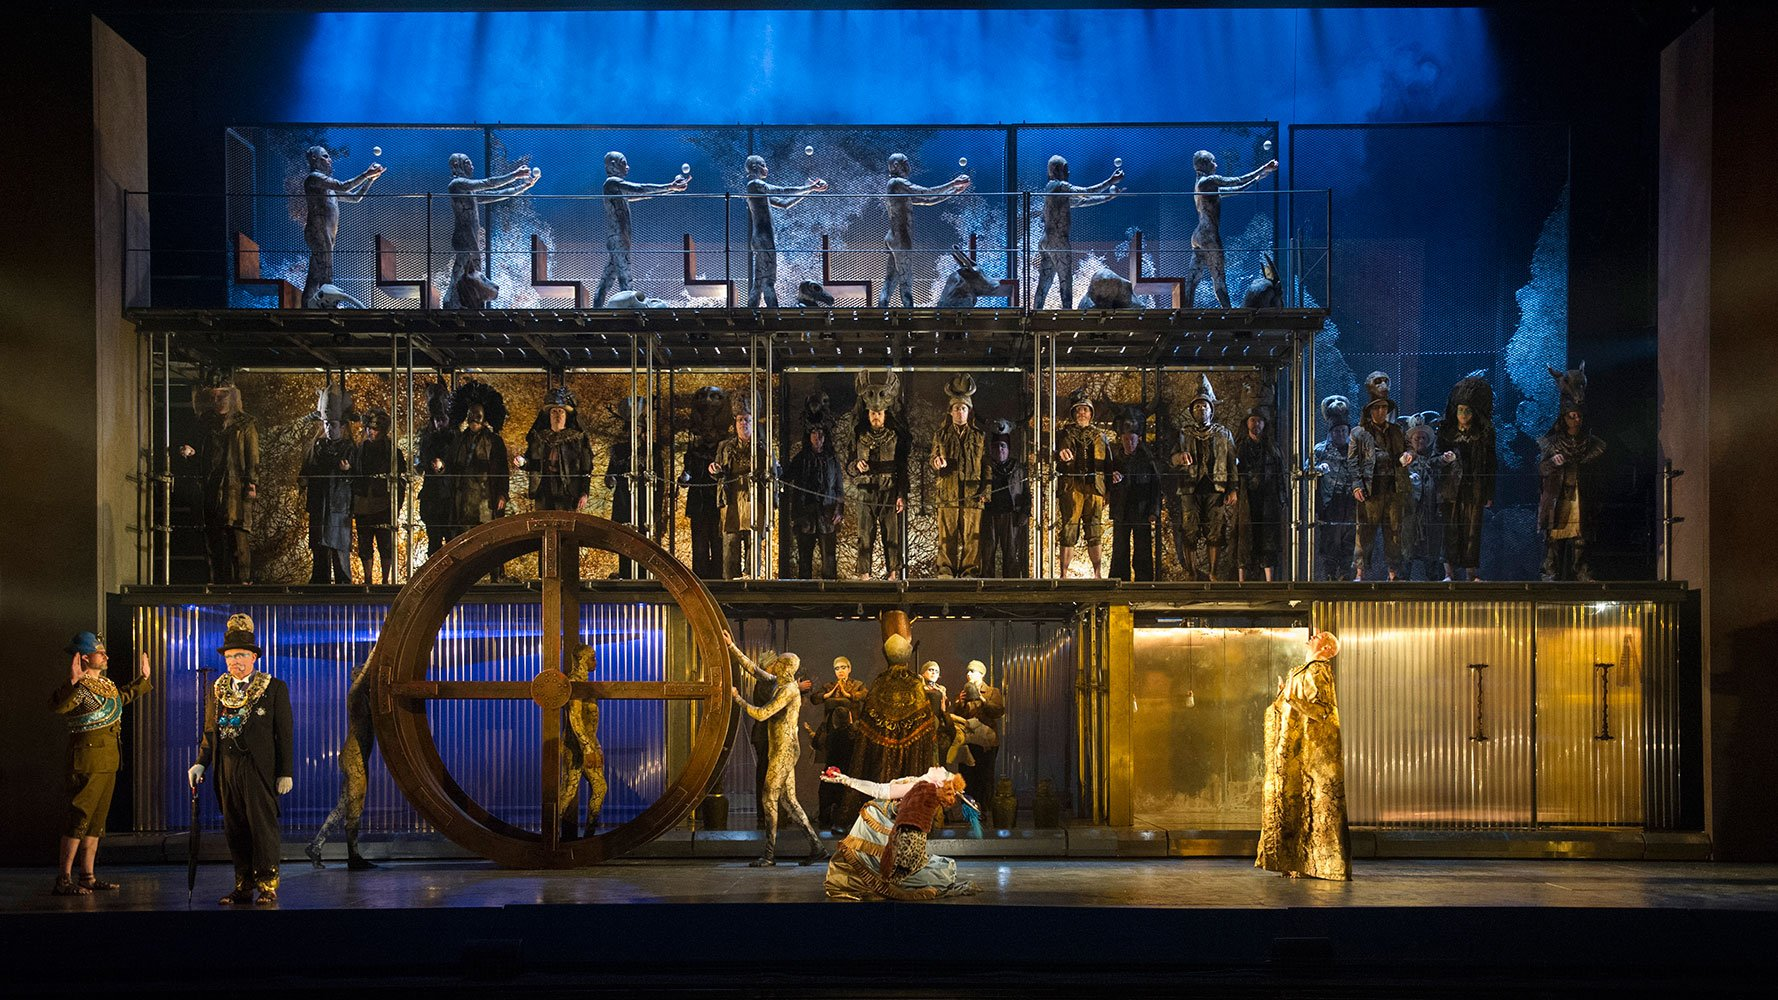 Liked the abstract production and the very slow coreography which reminded me of Japanese #Noh theatre. #Akhnaten https://t.co/AgXSNTG20B